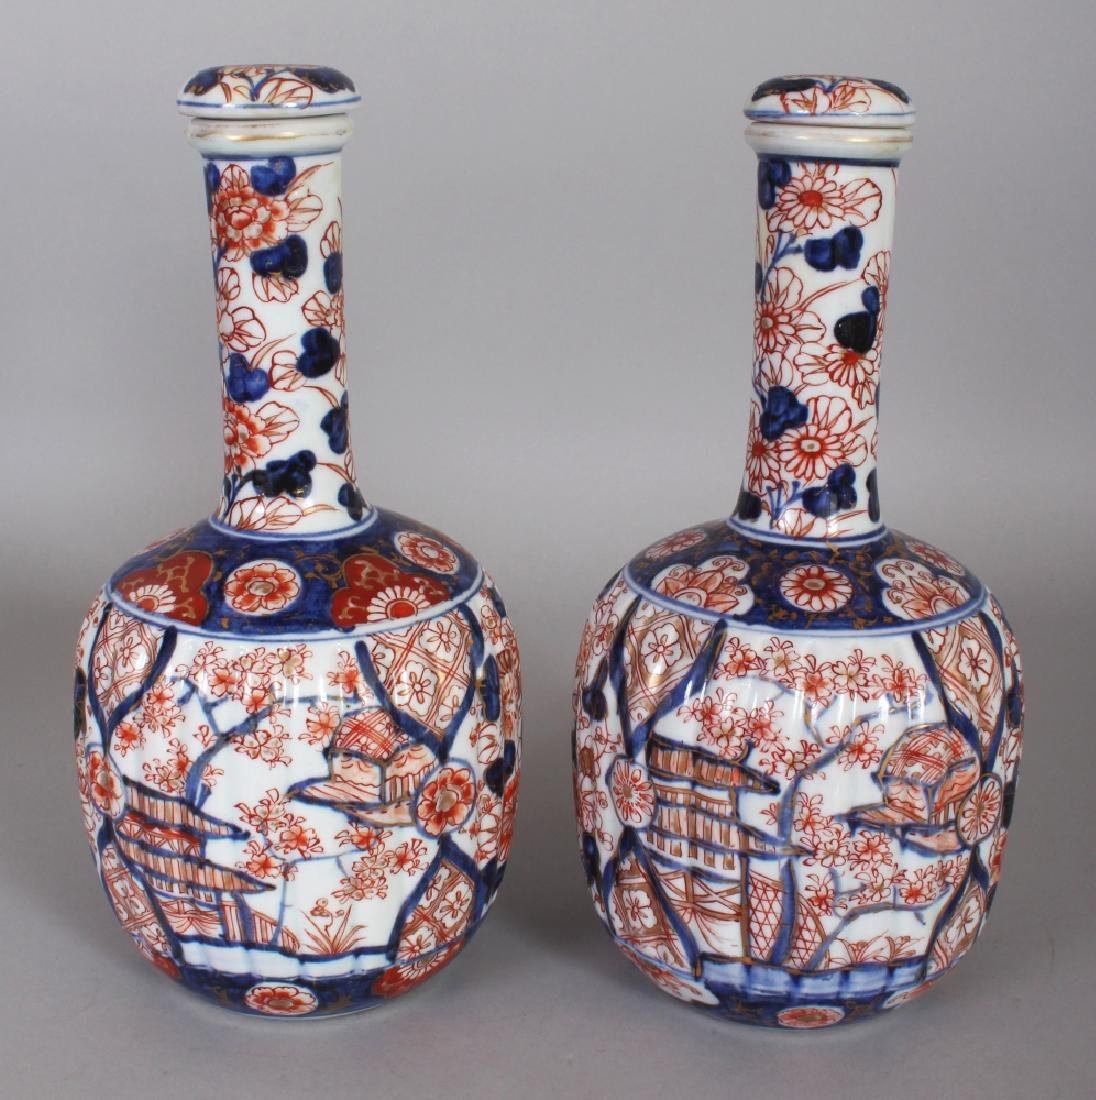 A PAIR OF JAPANESE MEIJI PERIOD IMARI FLUTED PORCELAIN